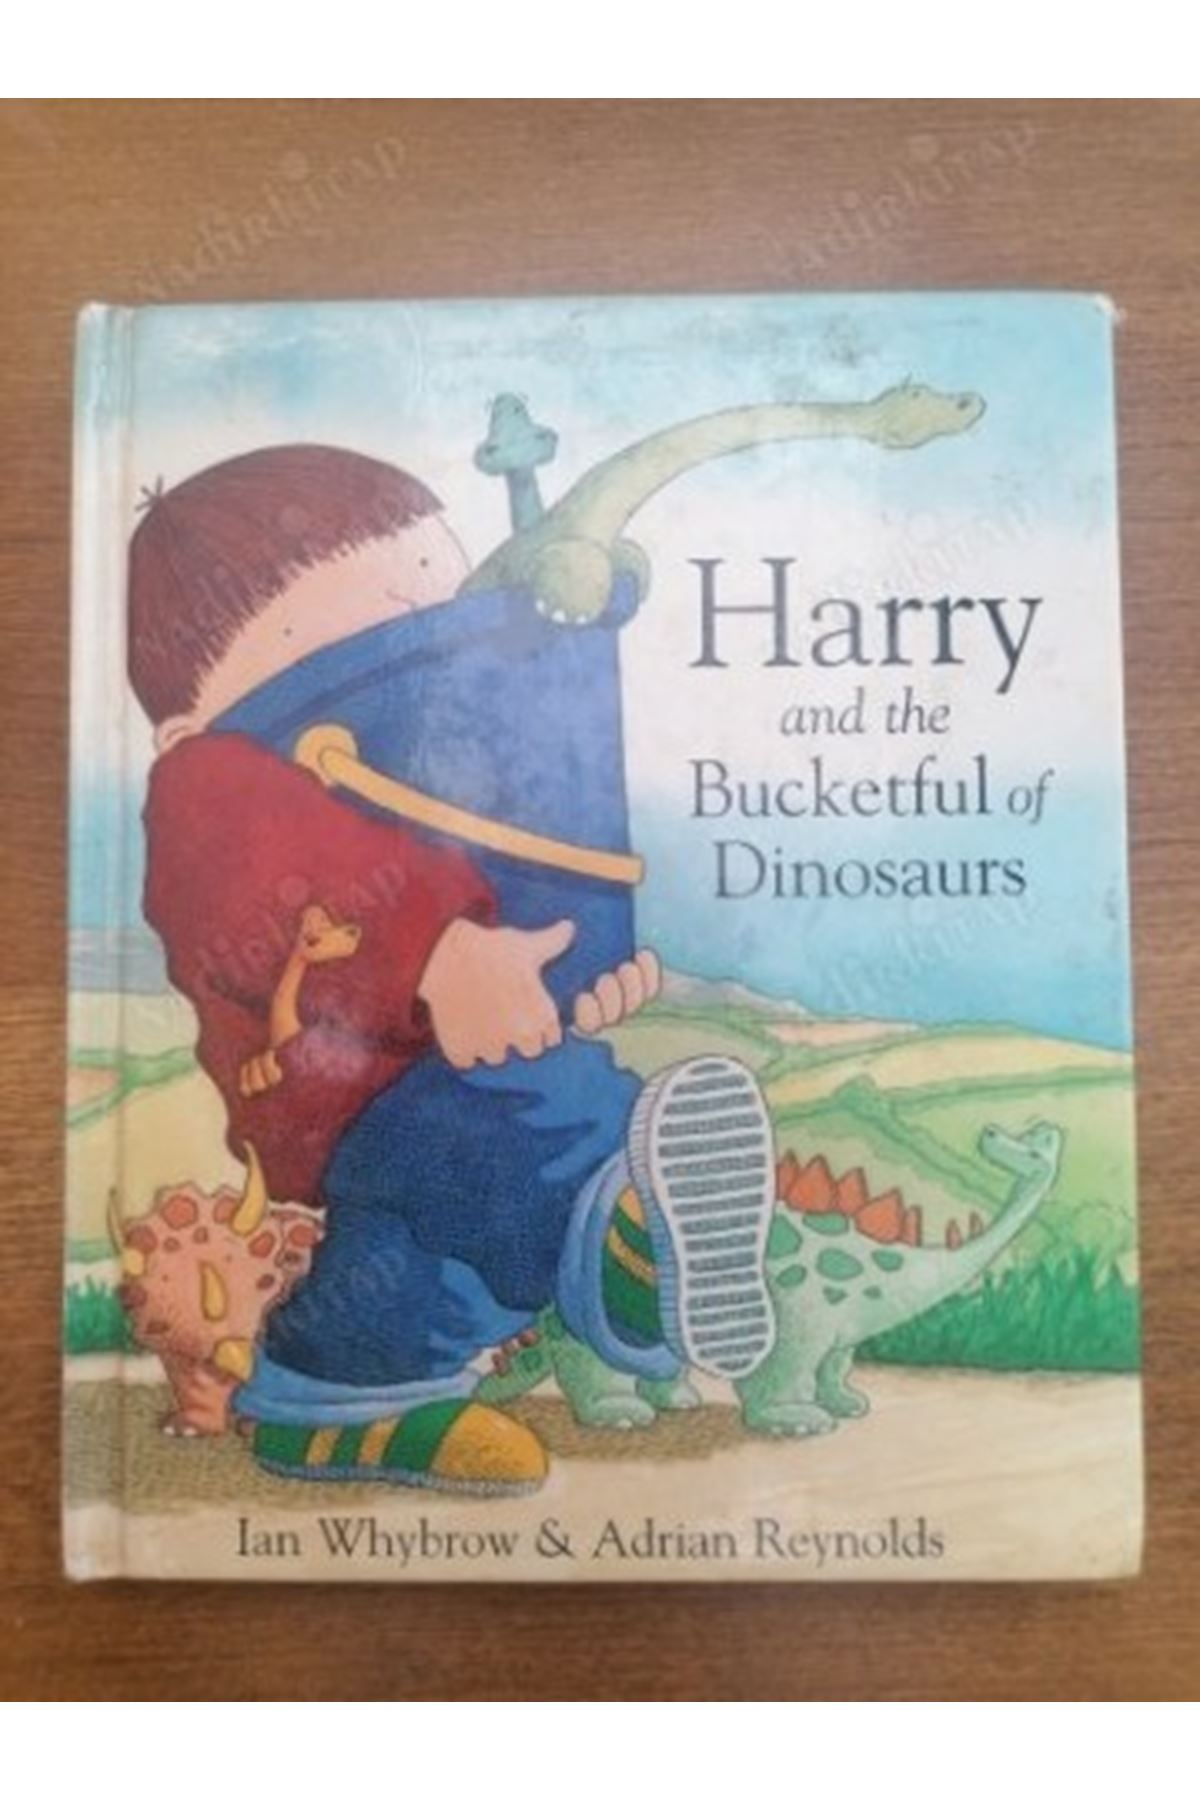 LAN WHYBROW - HARRY AND THE BUCKETFUL OF DİNOSAURS